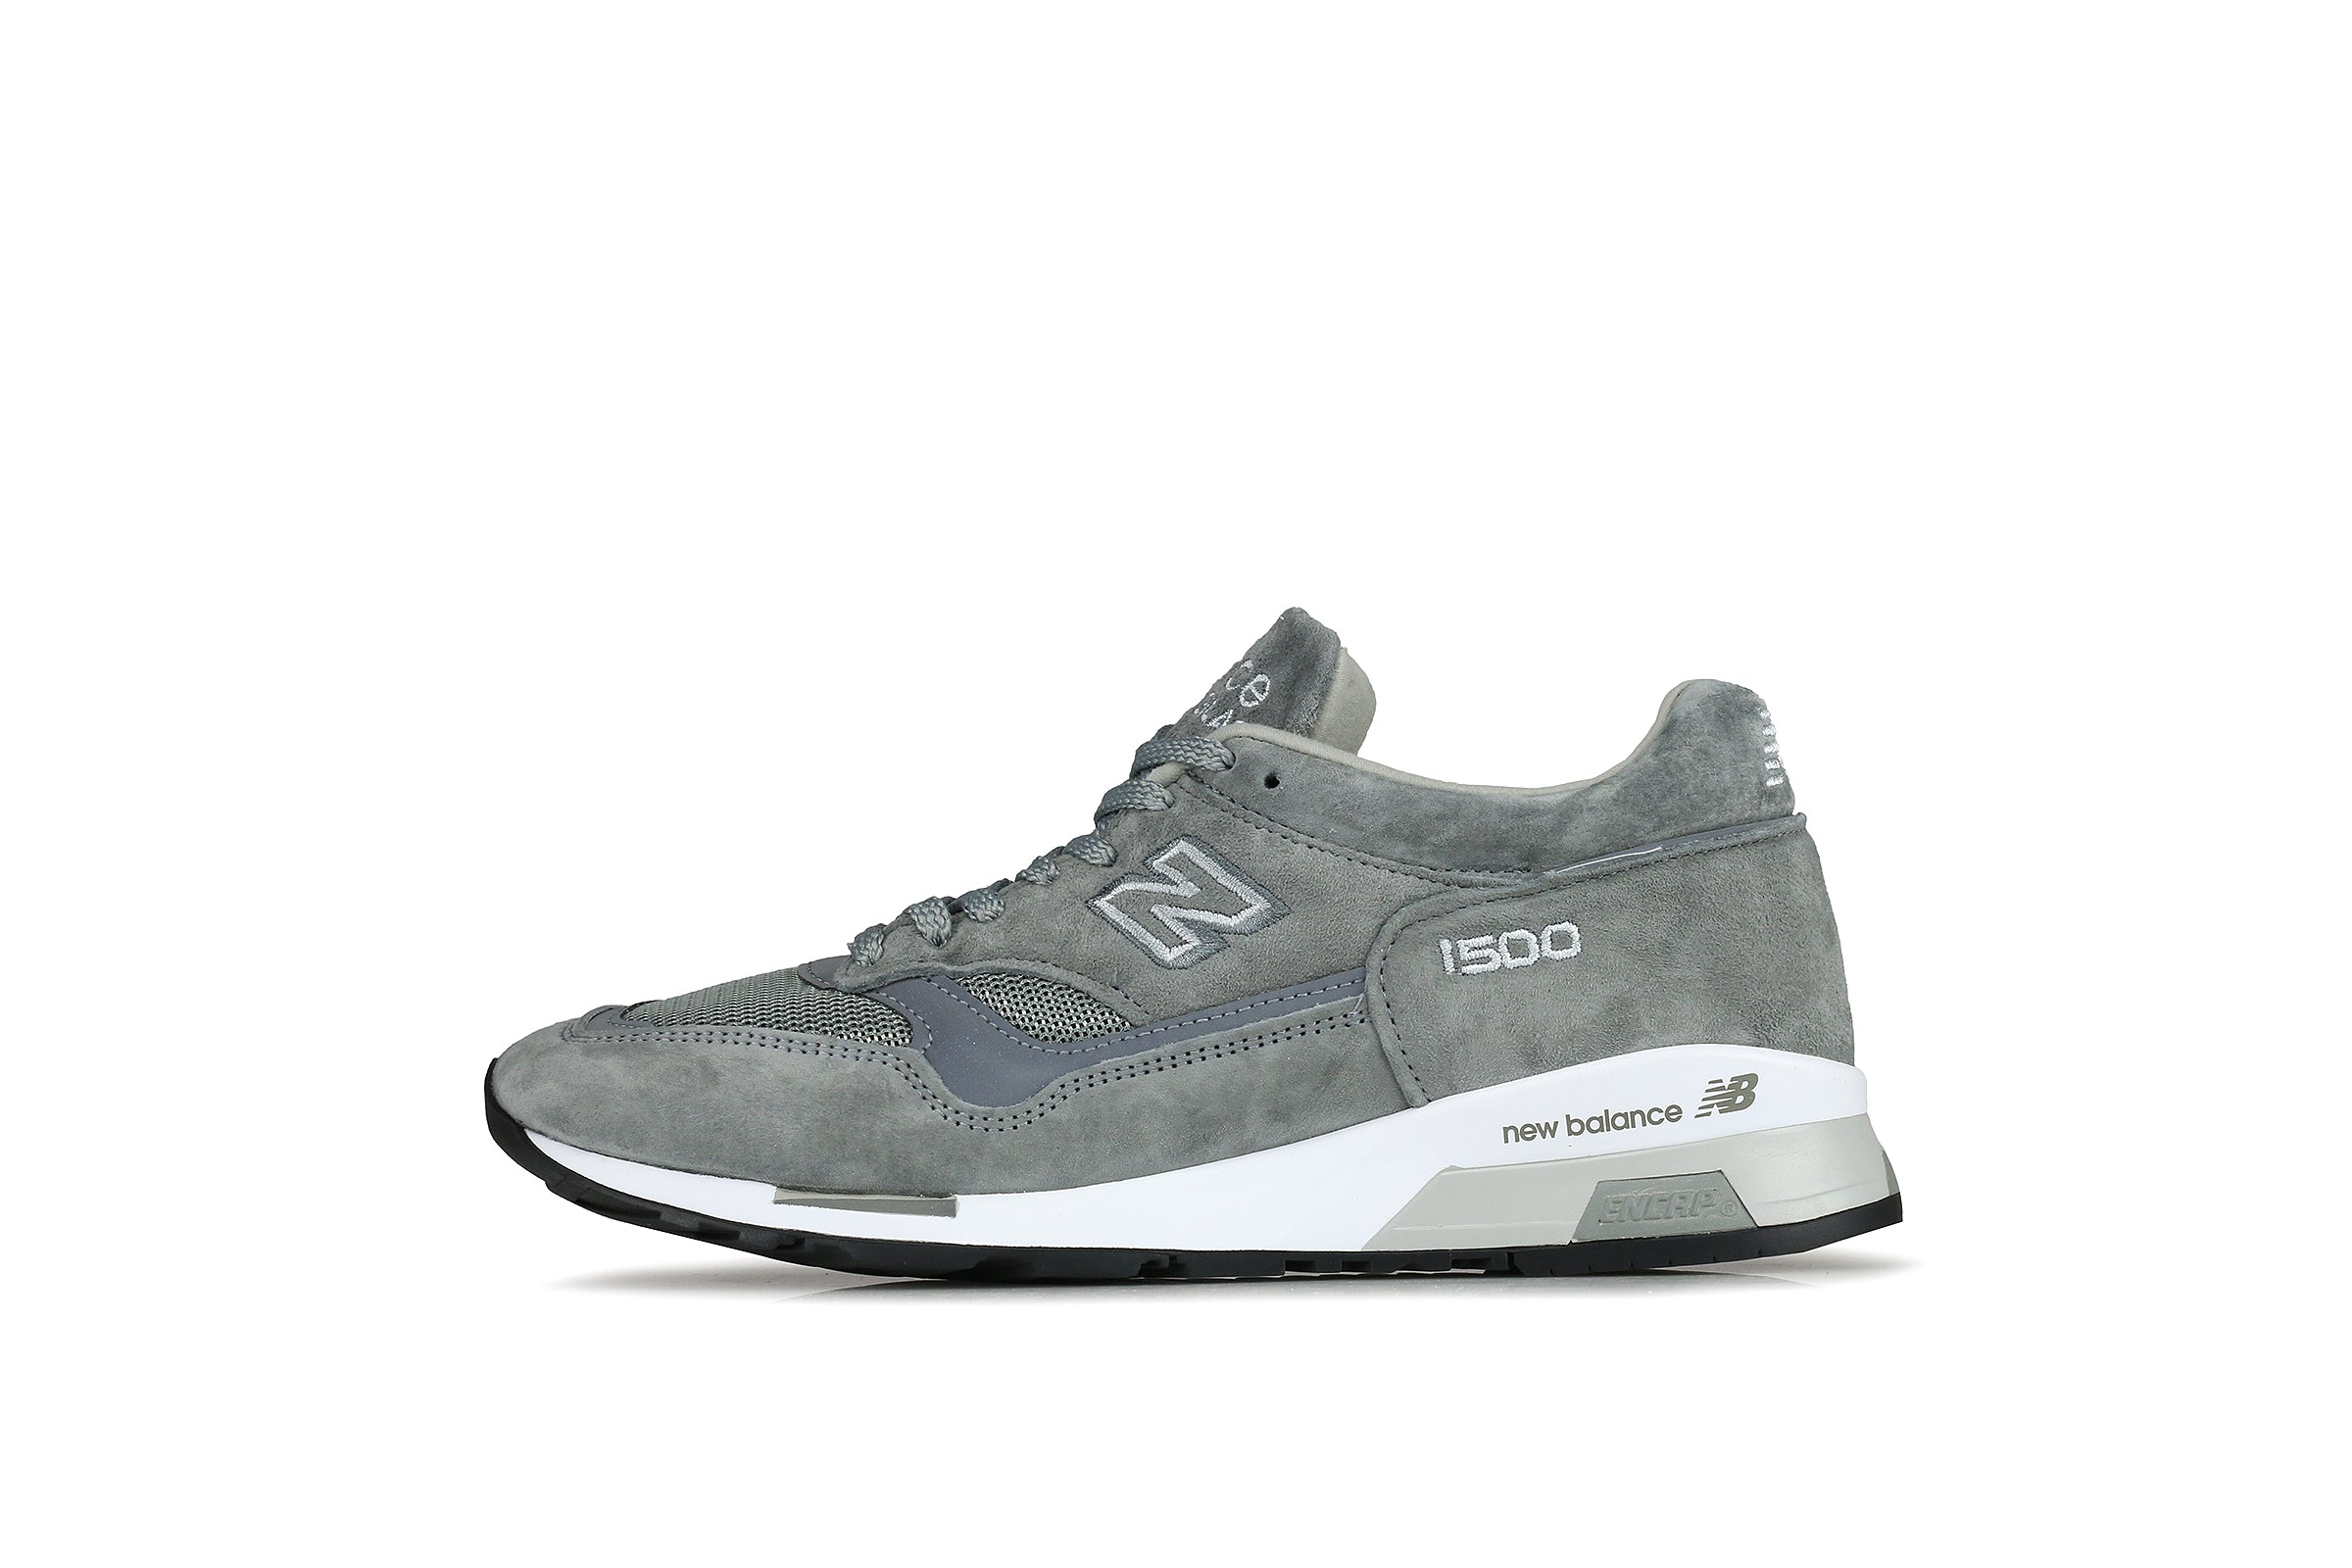 a13c4f8f3fc91 New Balance Sneakers | New Balance Apparel & Trainers | Hanon